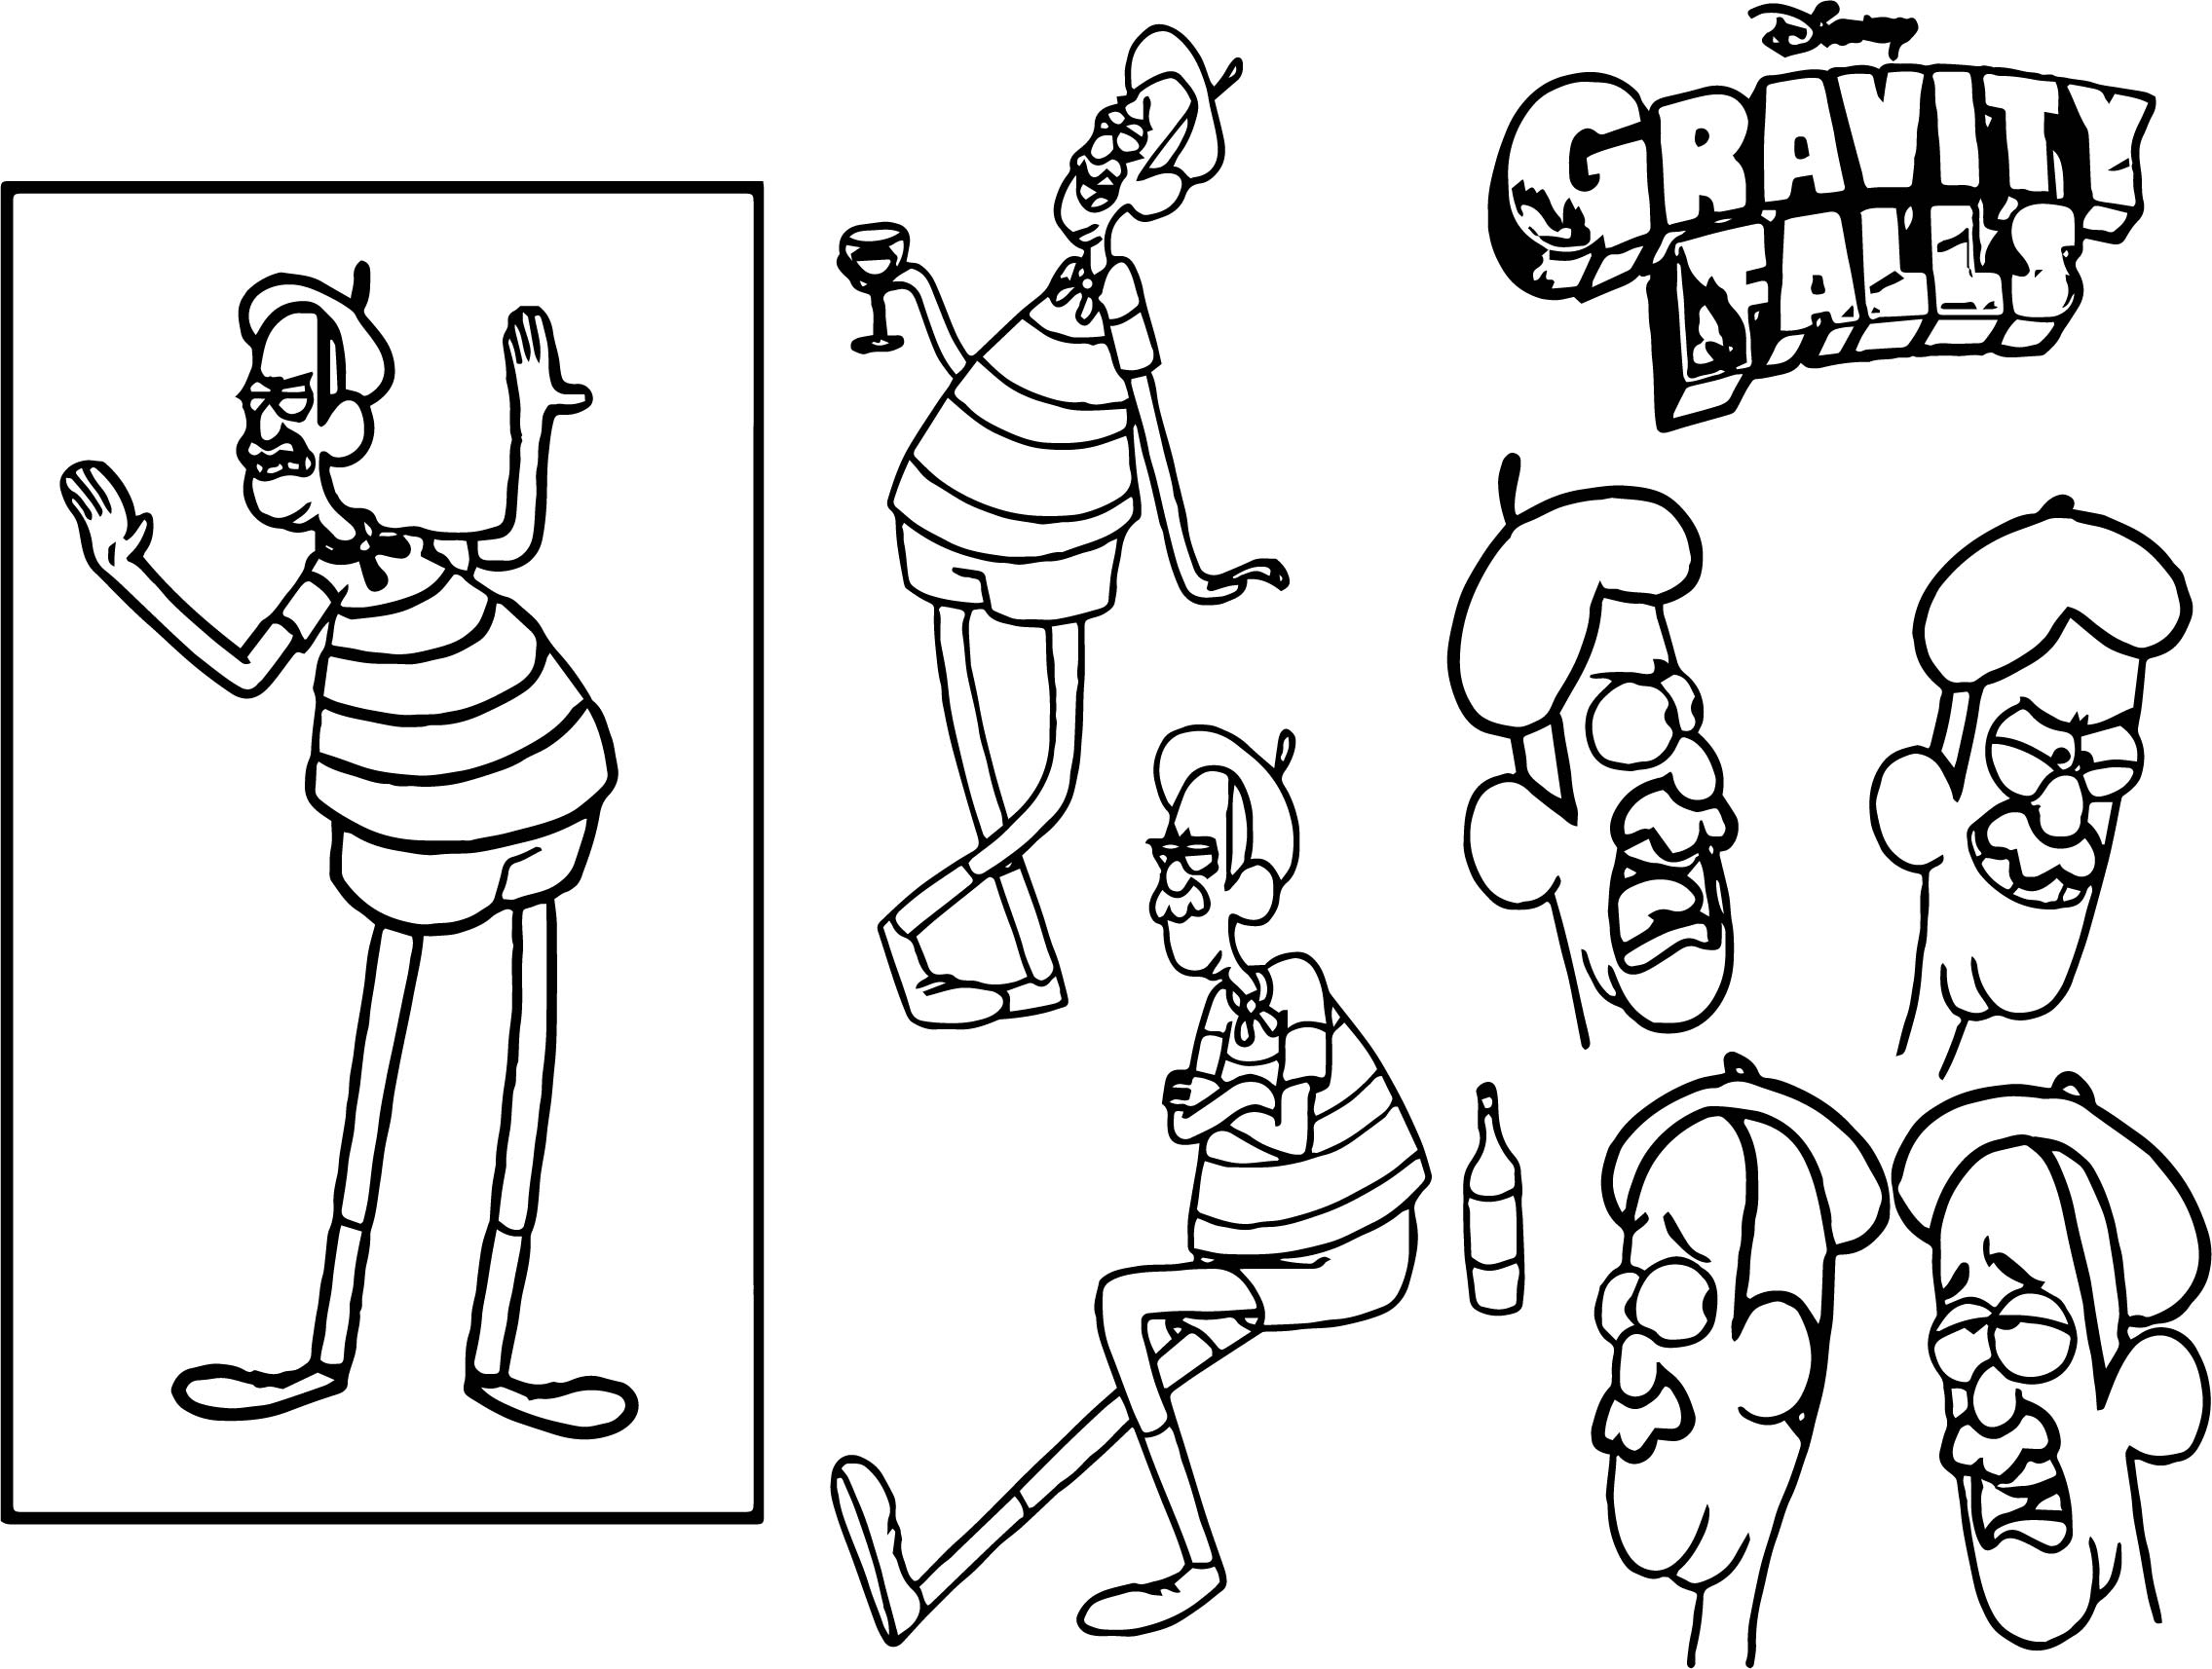 Gravity Falls Personajes Para Colorear: Character Design Assignment One Gravity Falls Coloring